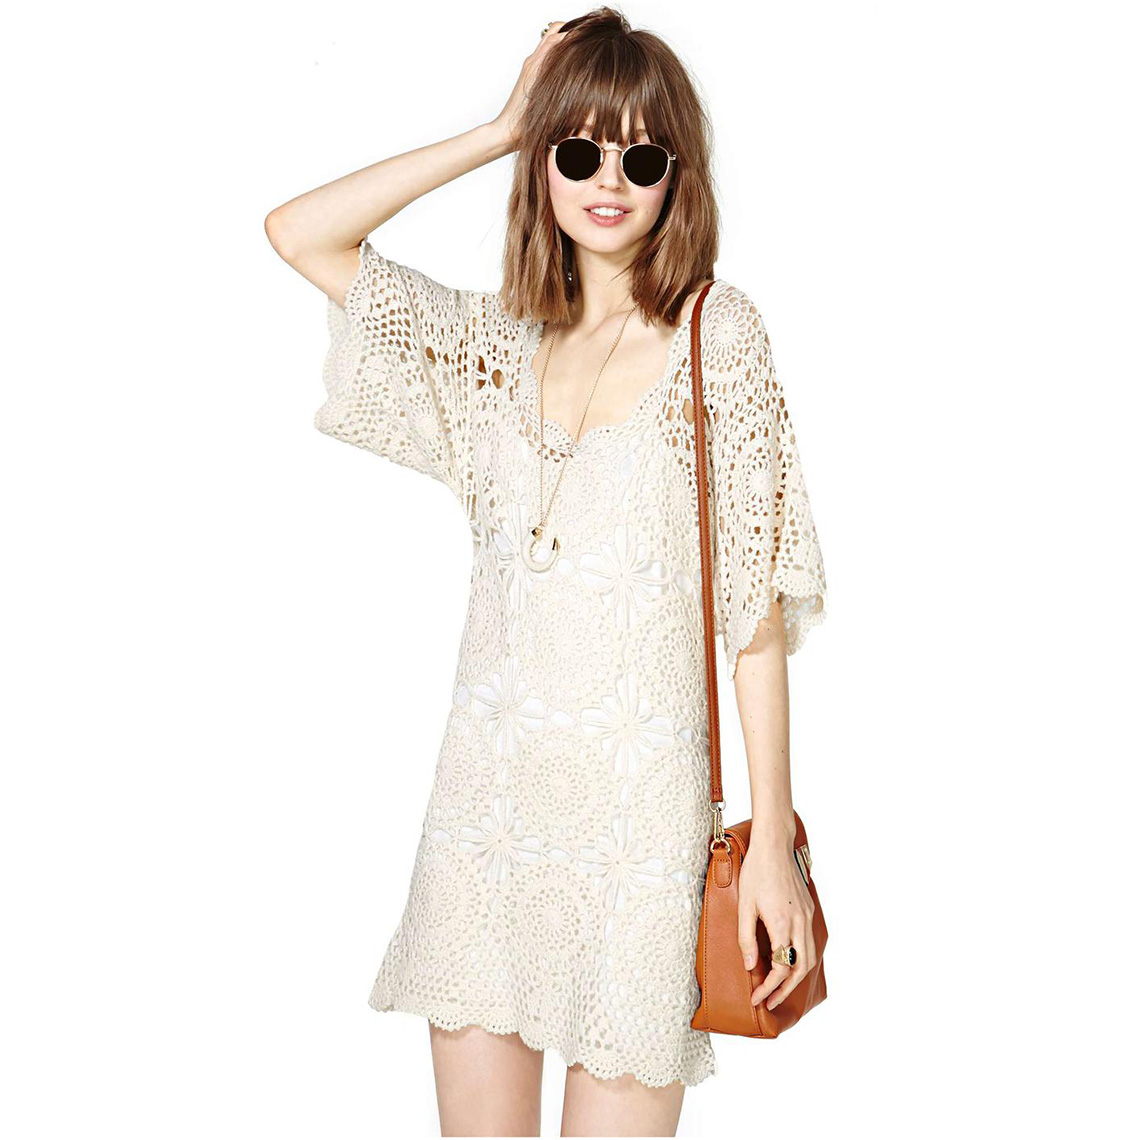 526-Lucca-Couture-Crochet-Shift-Dress-1